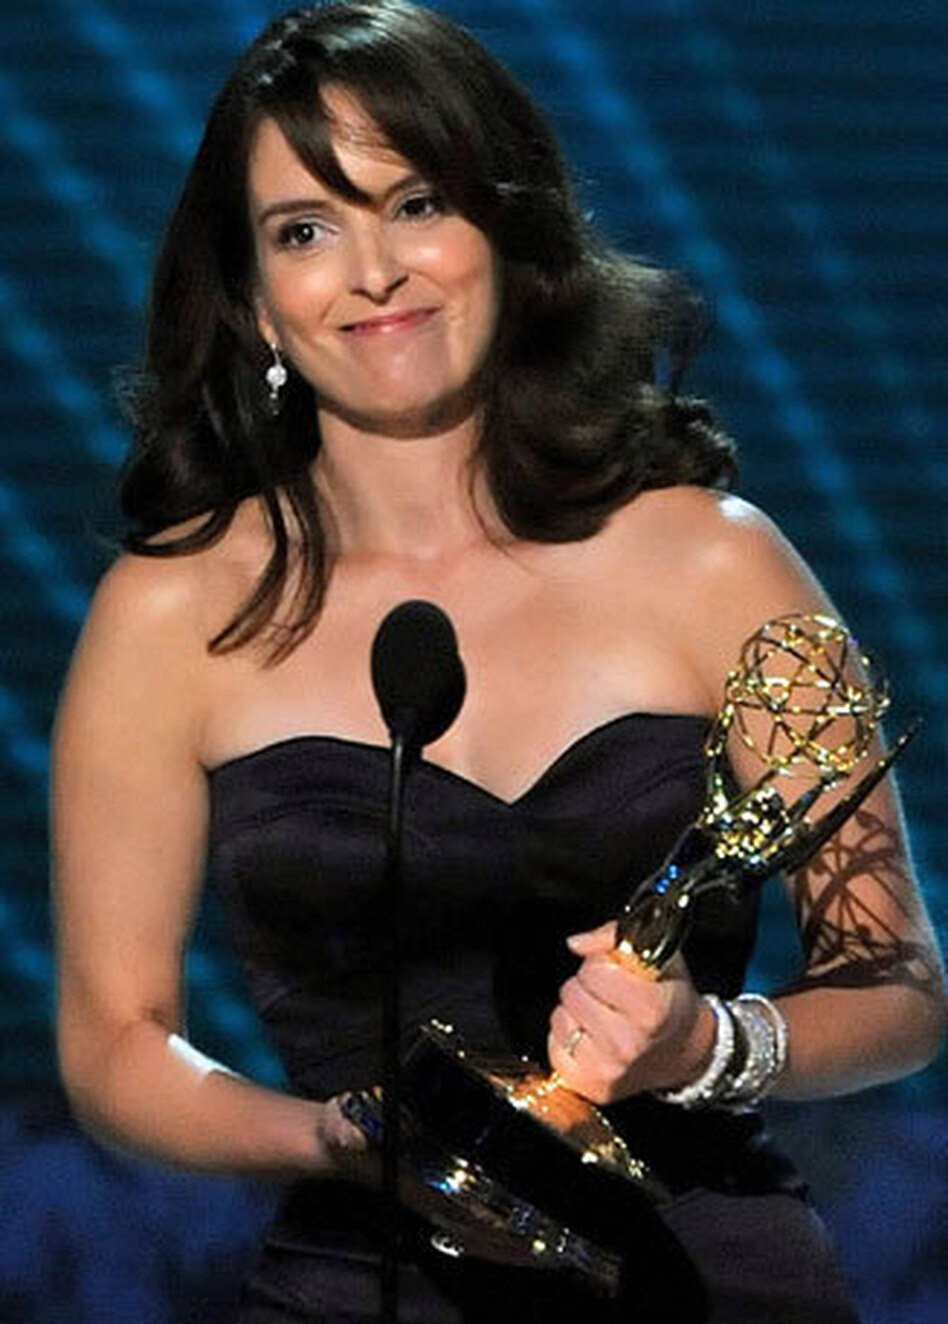 Tina Fey won an Emmy Award for outstanding lead actress in a comedy series for her role as Liz Lemon on <em>30 Rock</em>.